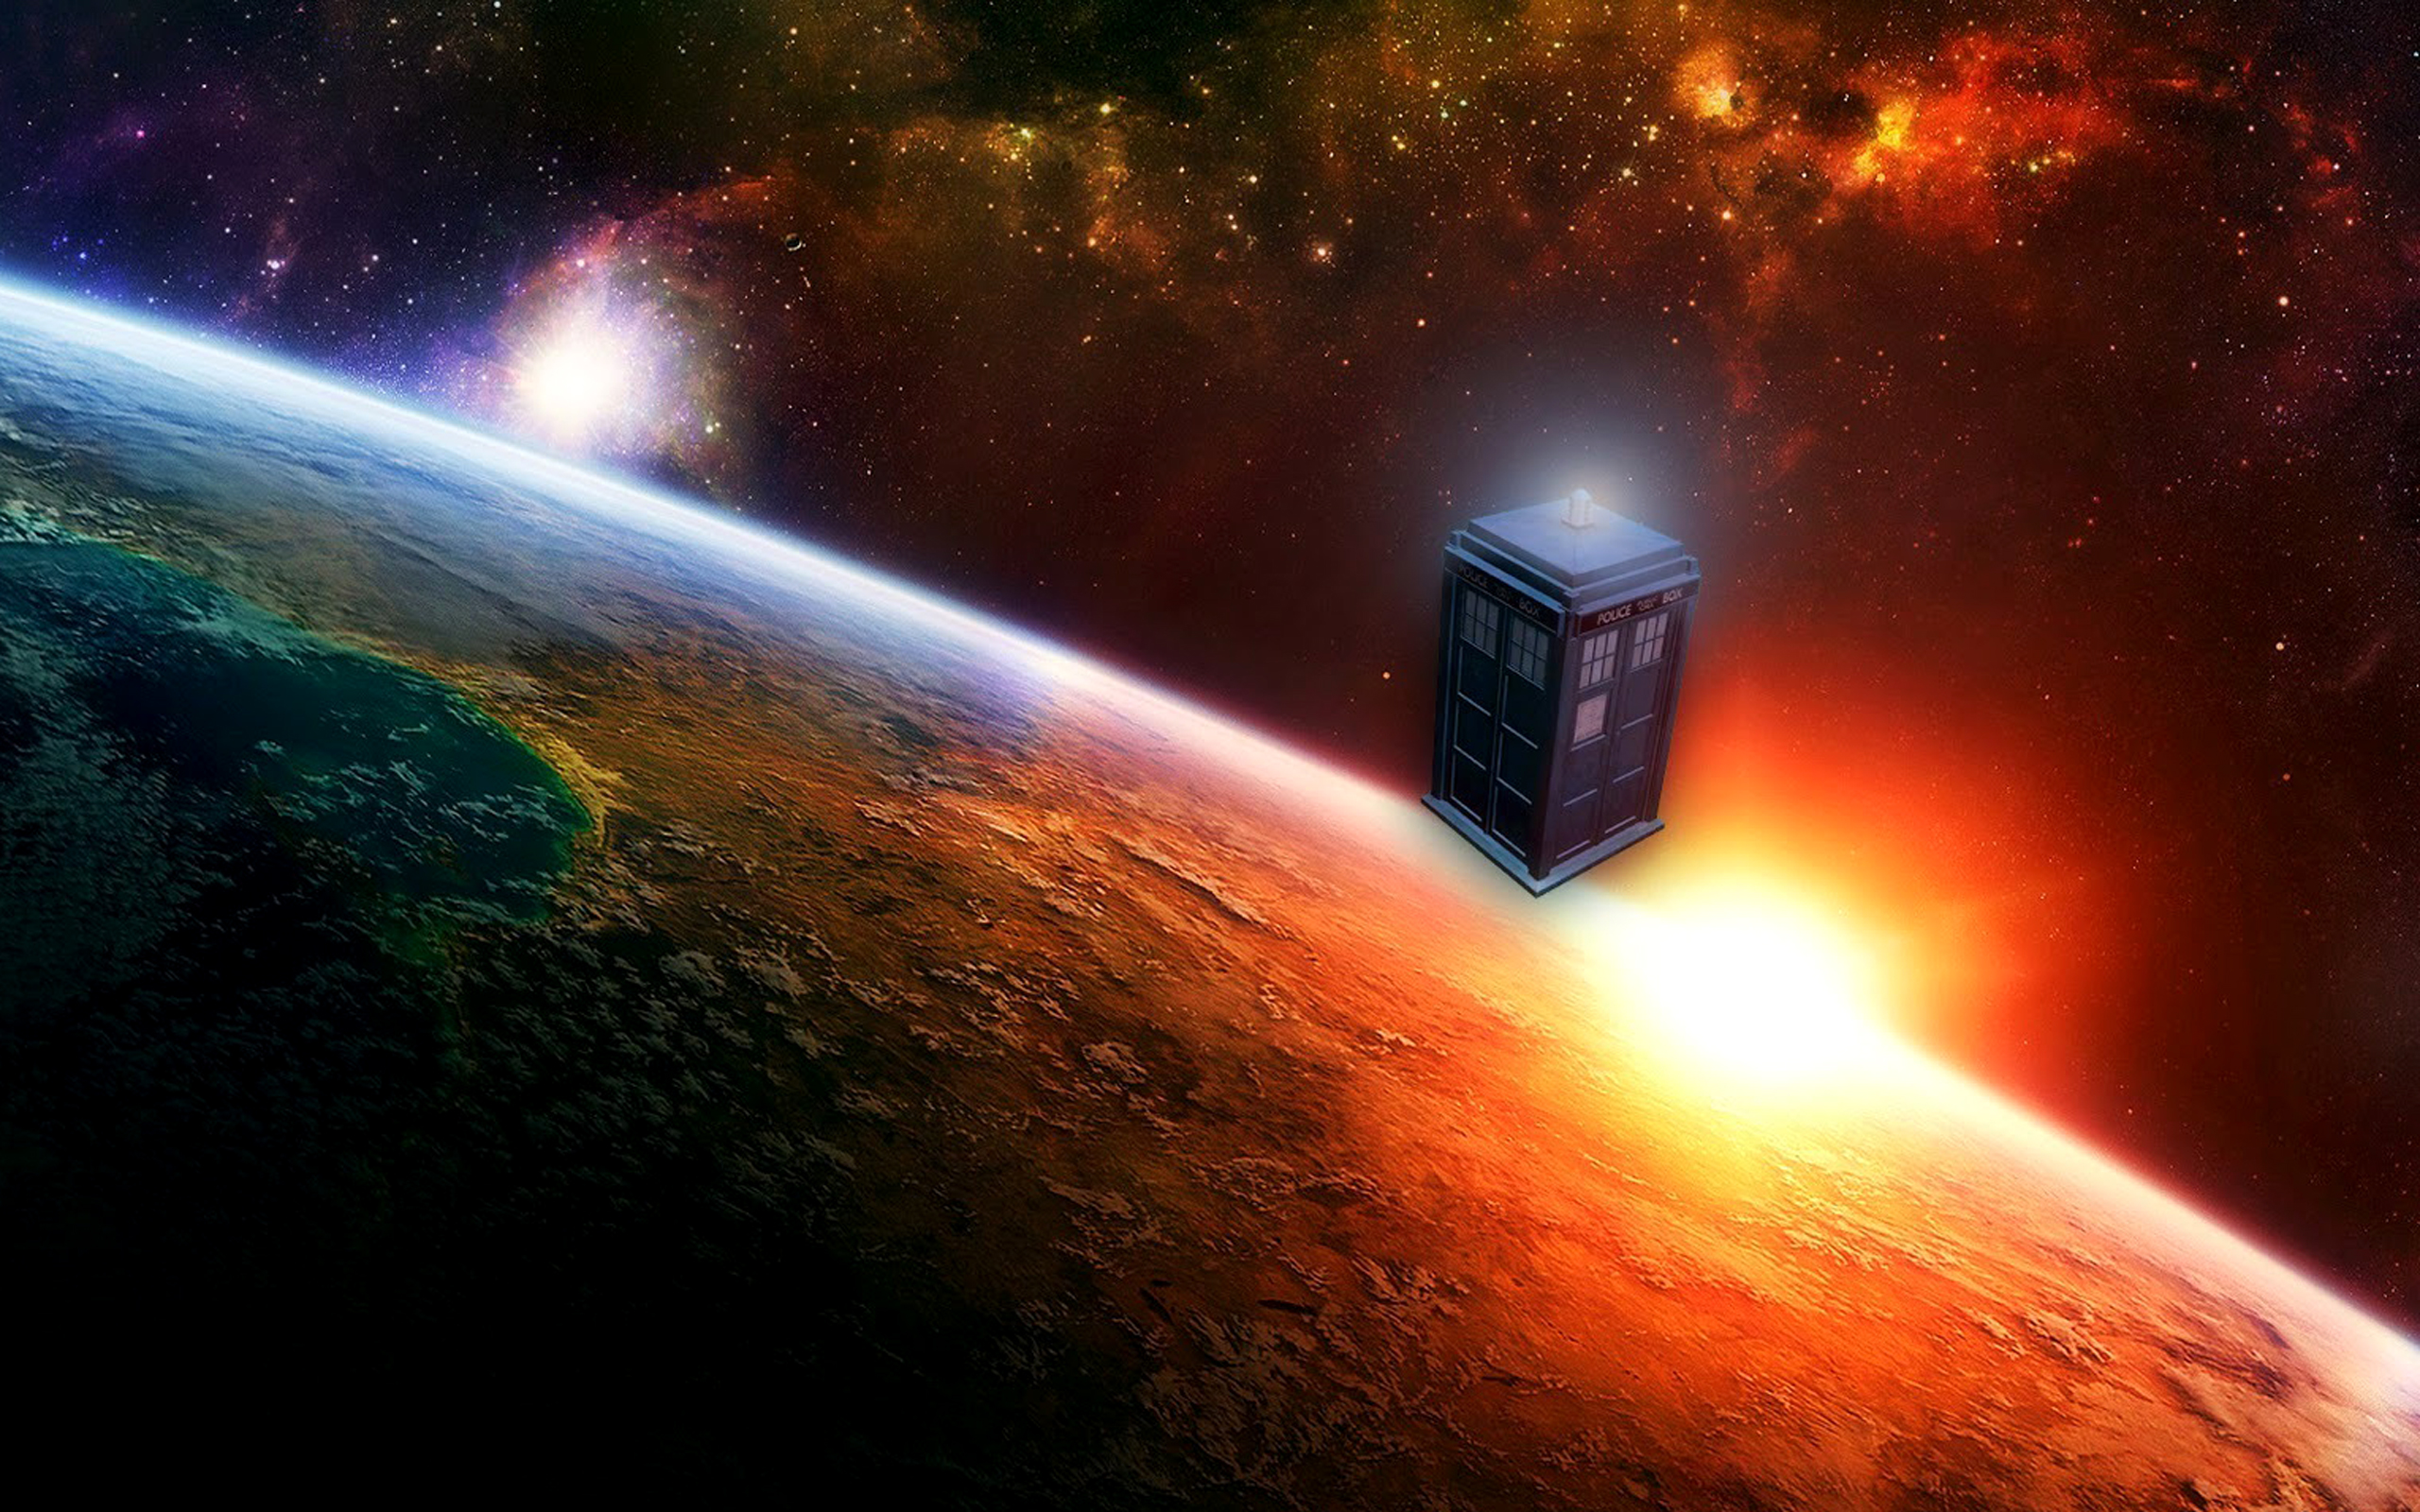 Doctor Who images Wallpaper HD wallpaper and background photos